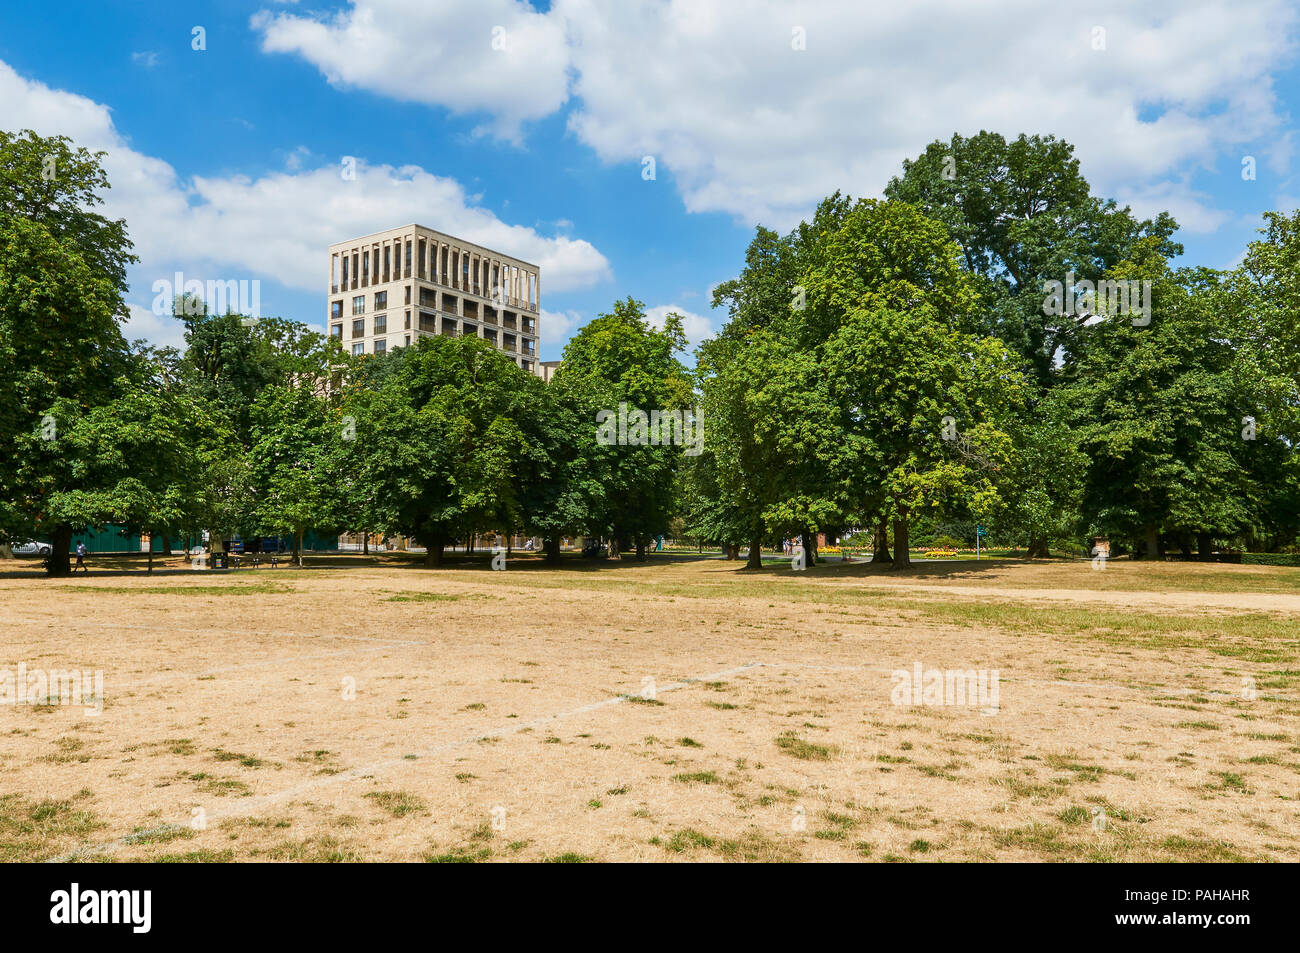 Dry arid conditions in Clissold Park, Stoke Newington, North London UK, during the July 2018 heatwave Stock Photo